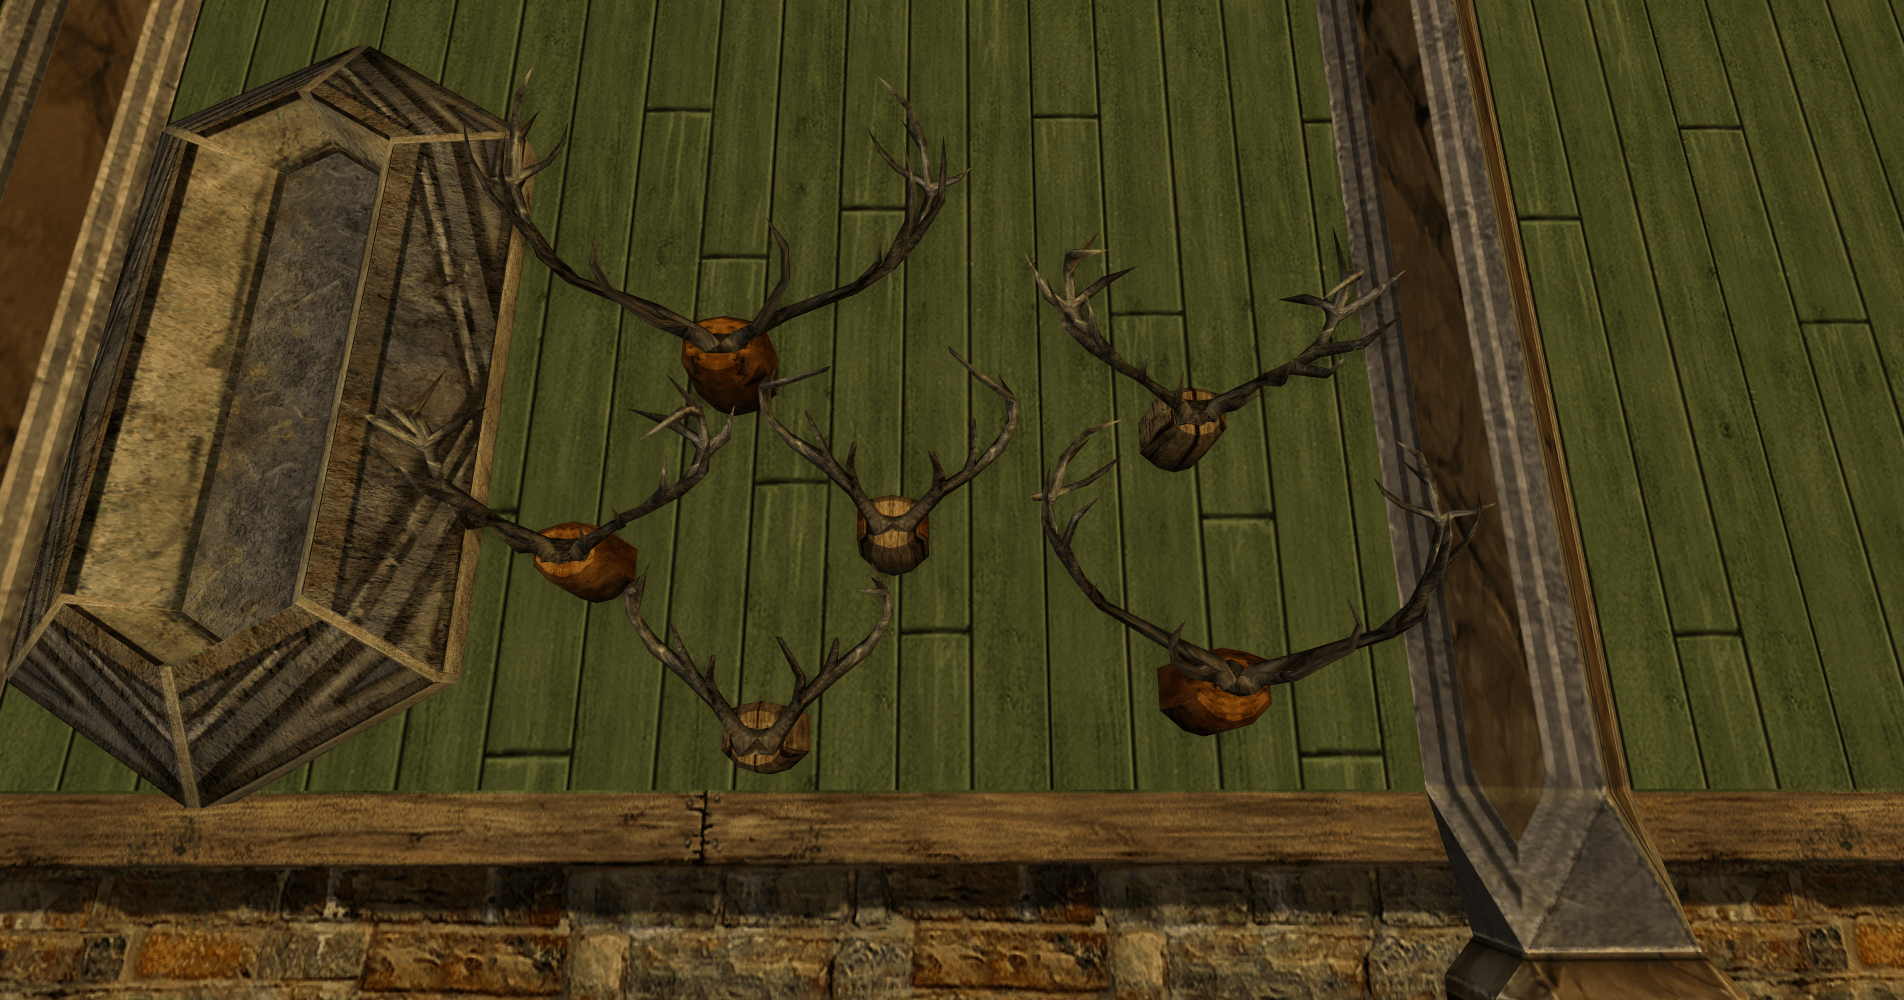 Group of Rohirric Antlers